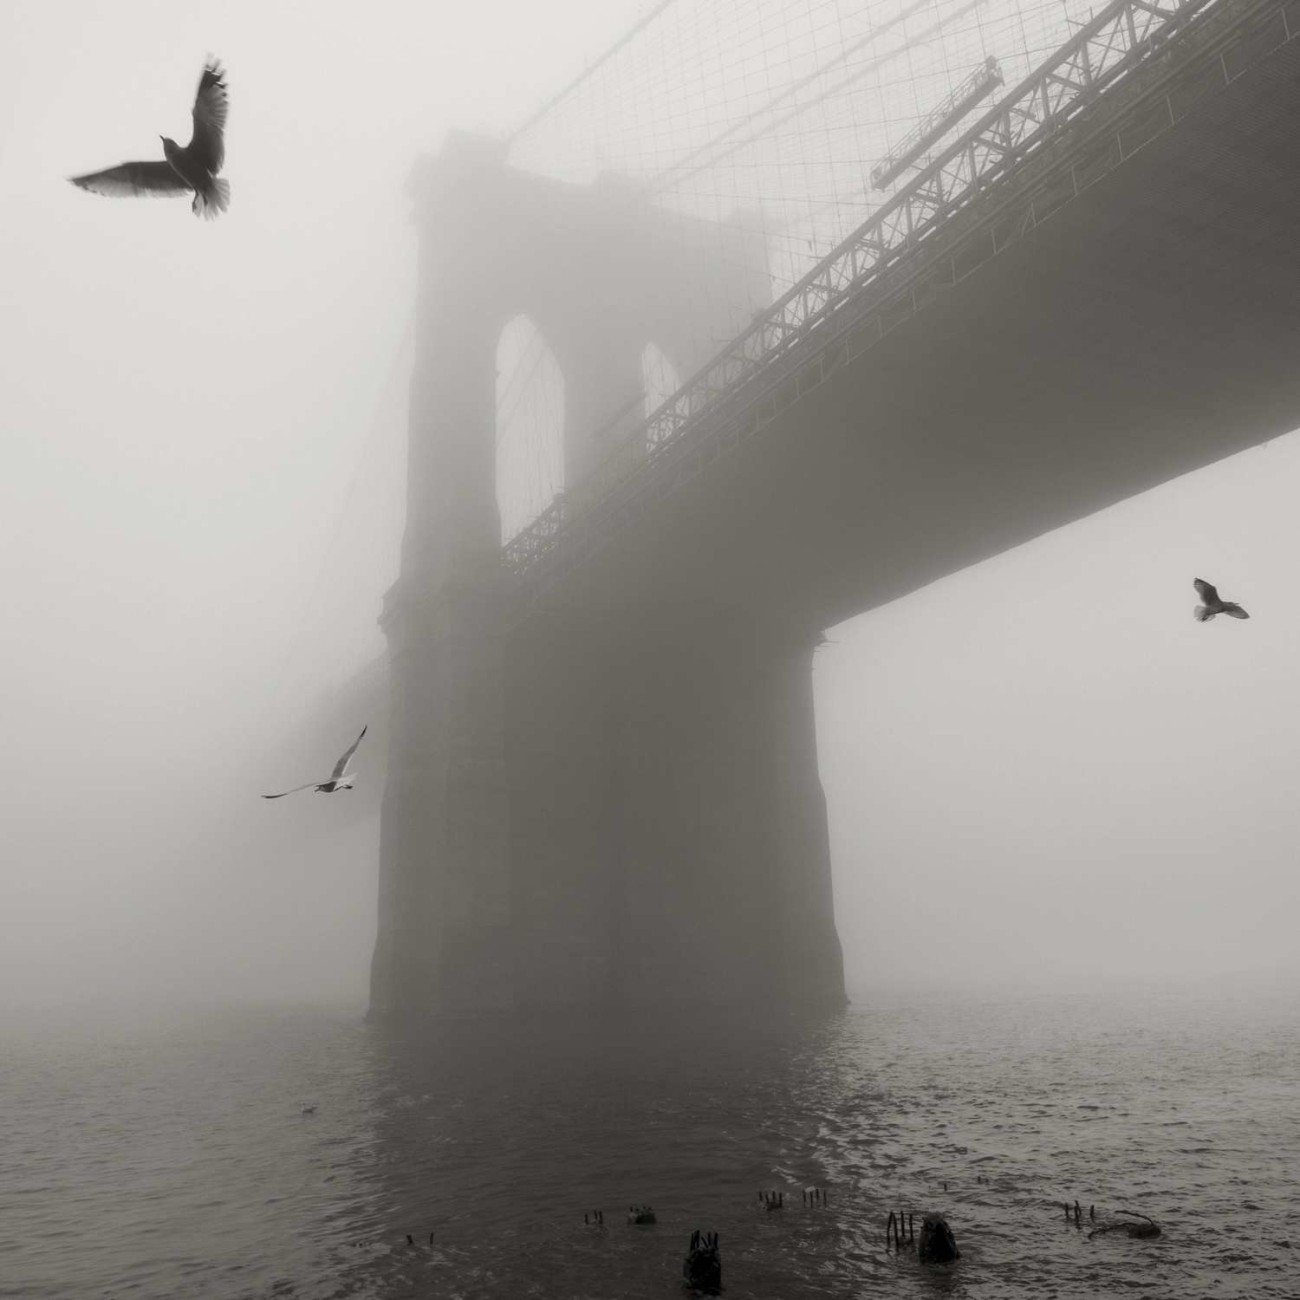 Brooklyn Bridge and gulls in fog, NY, 2014